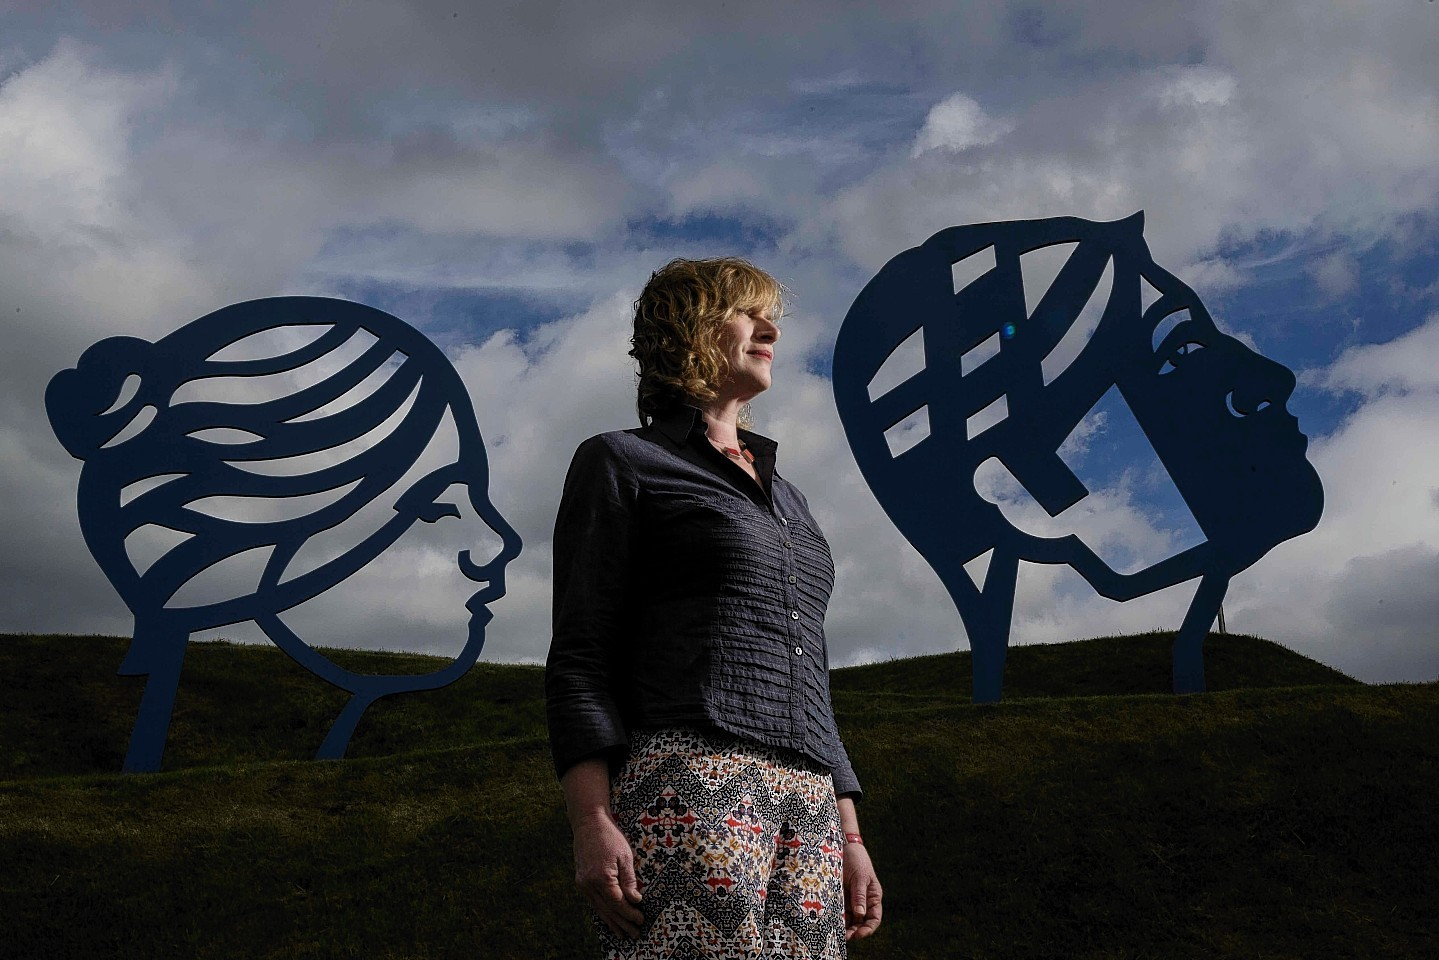 Rosemary Beaton with her artwork at Prime Four